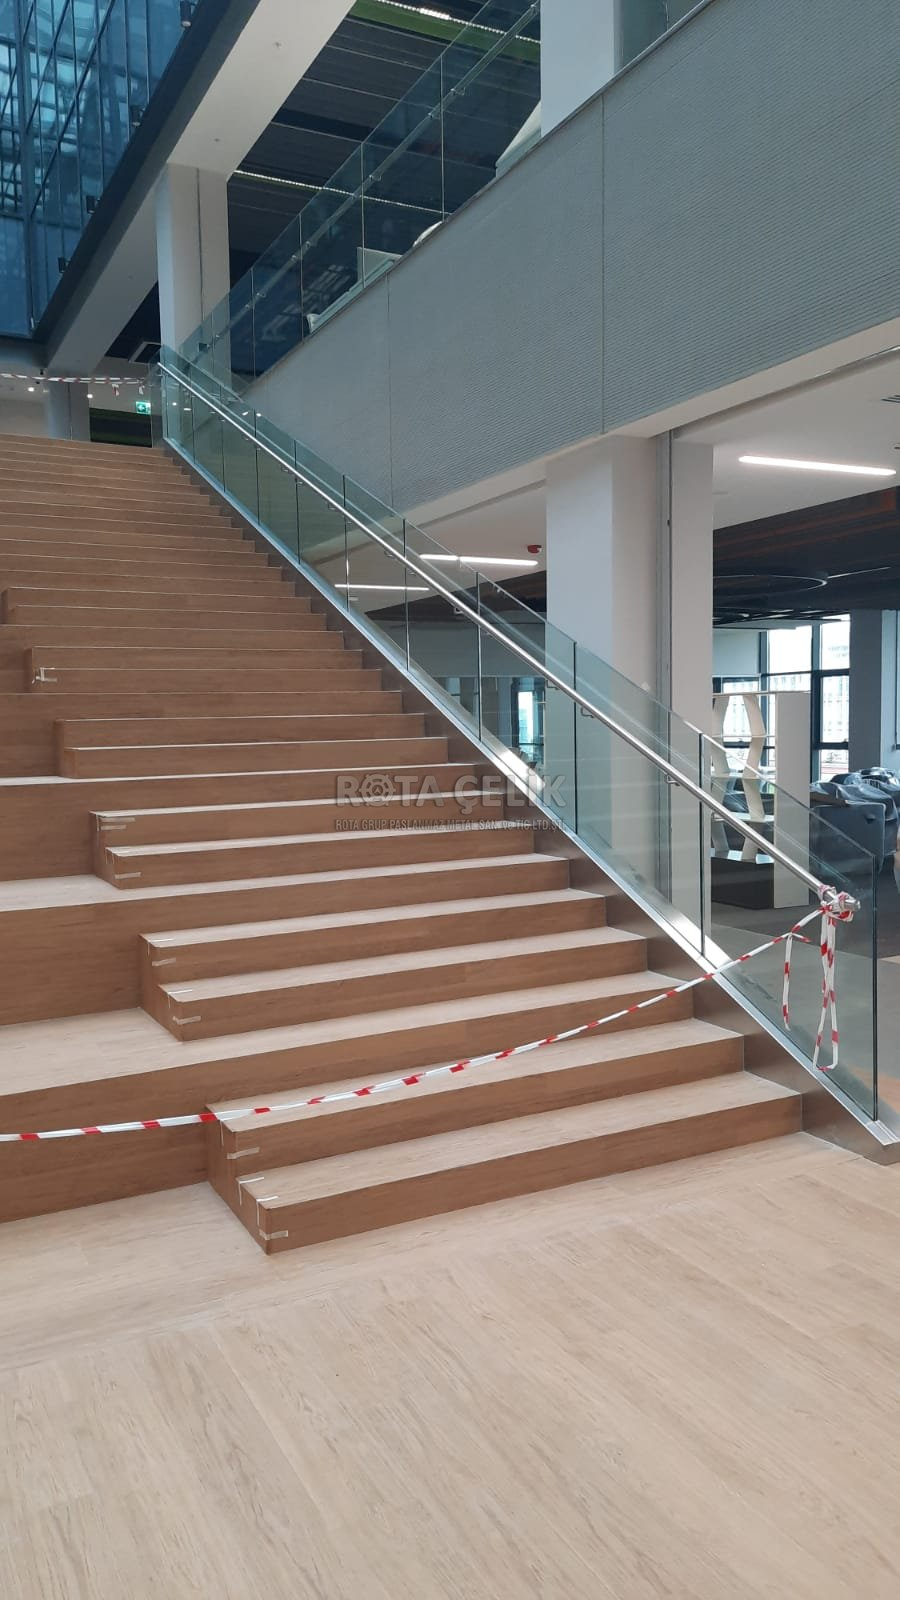 Stainless glass and spider railing